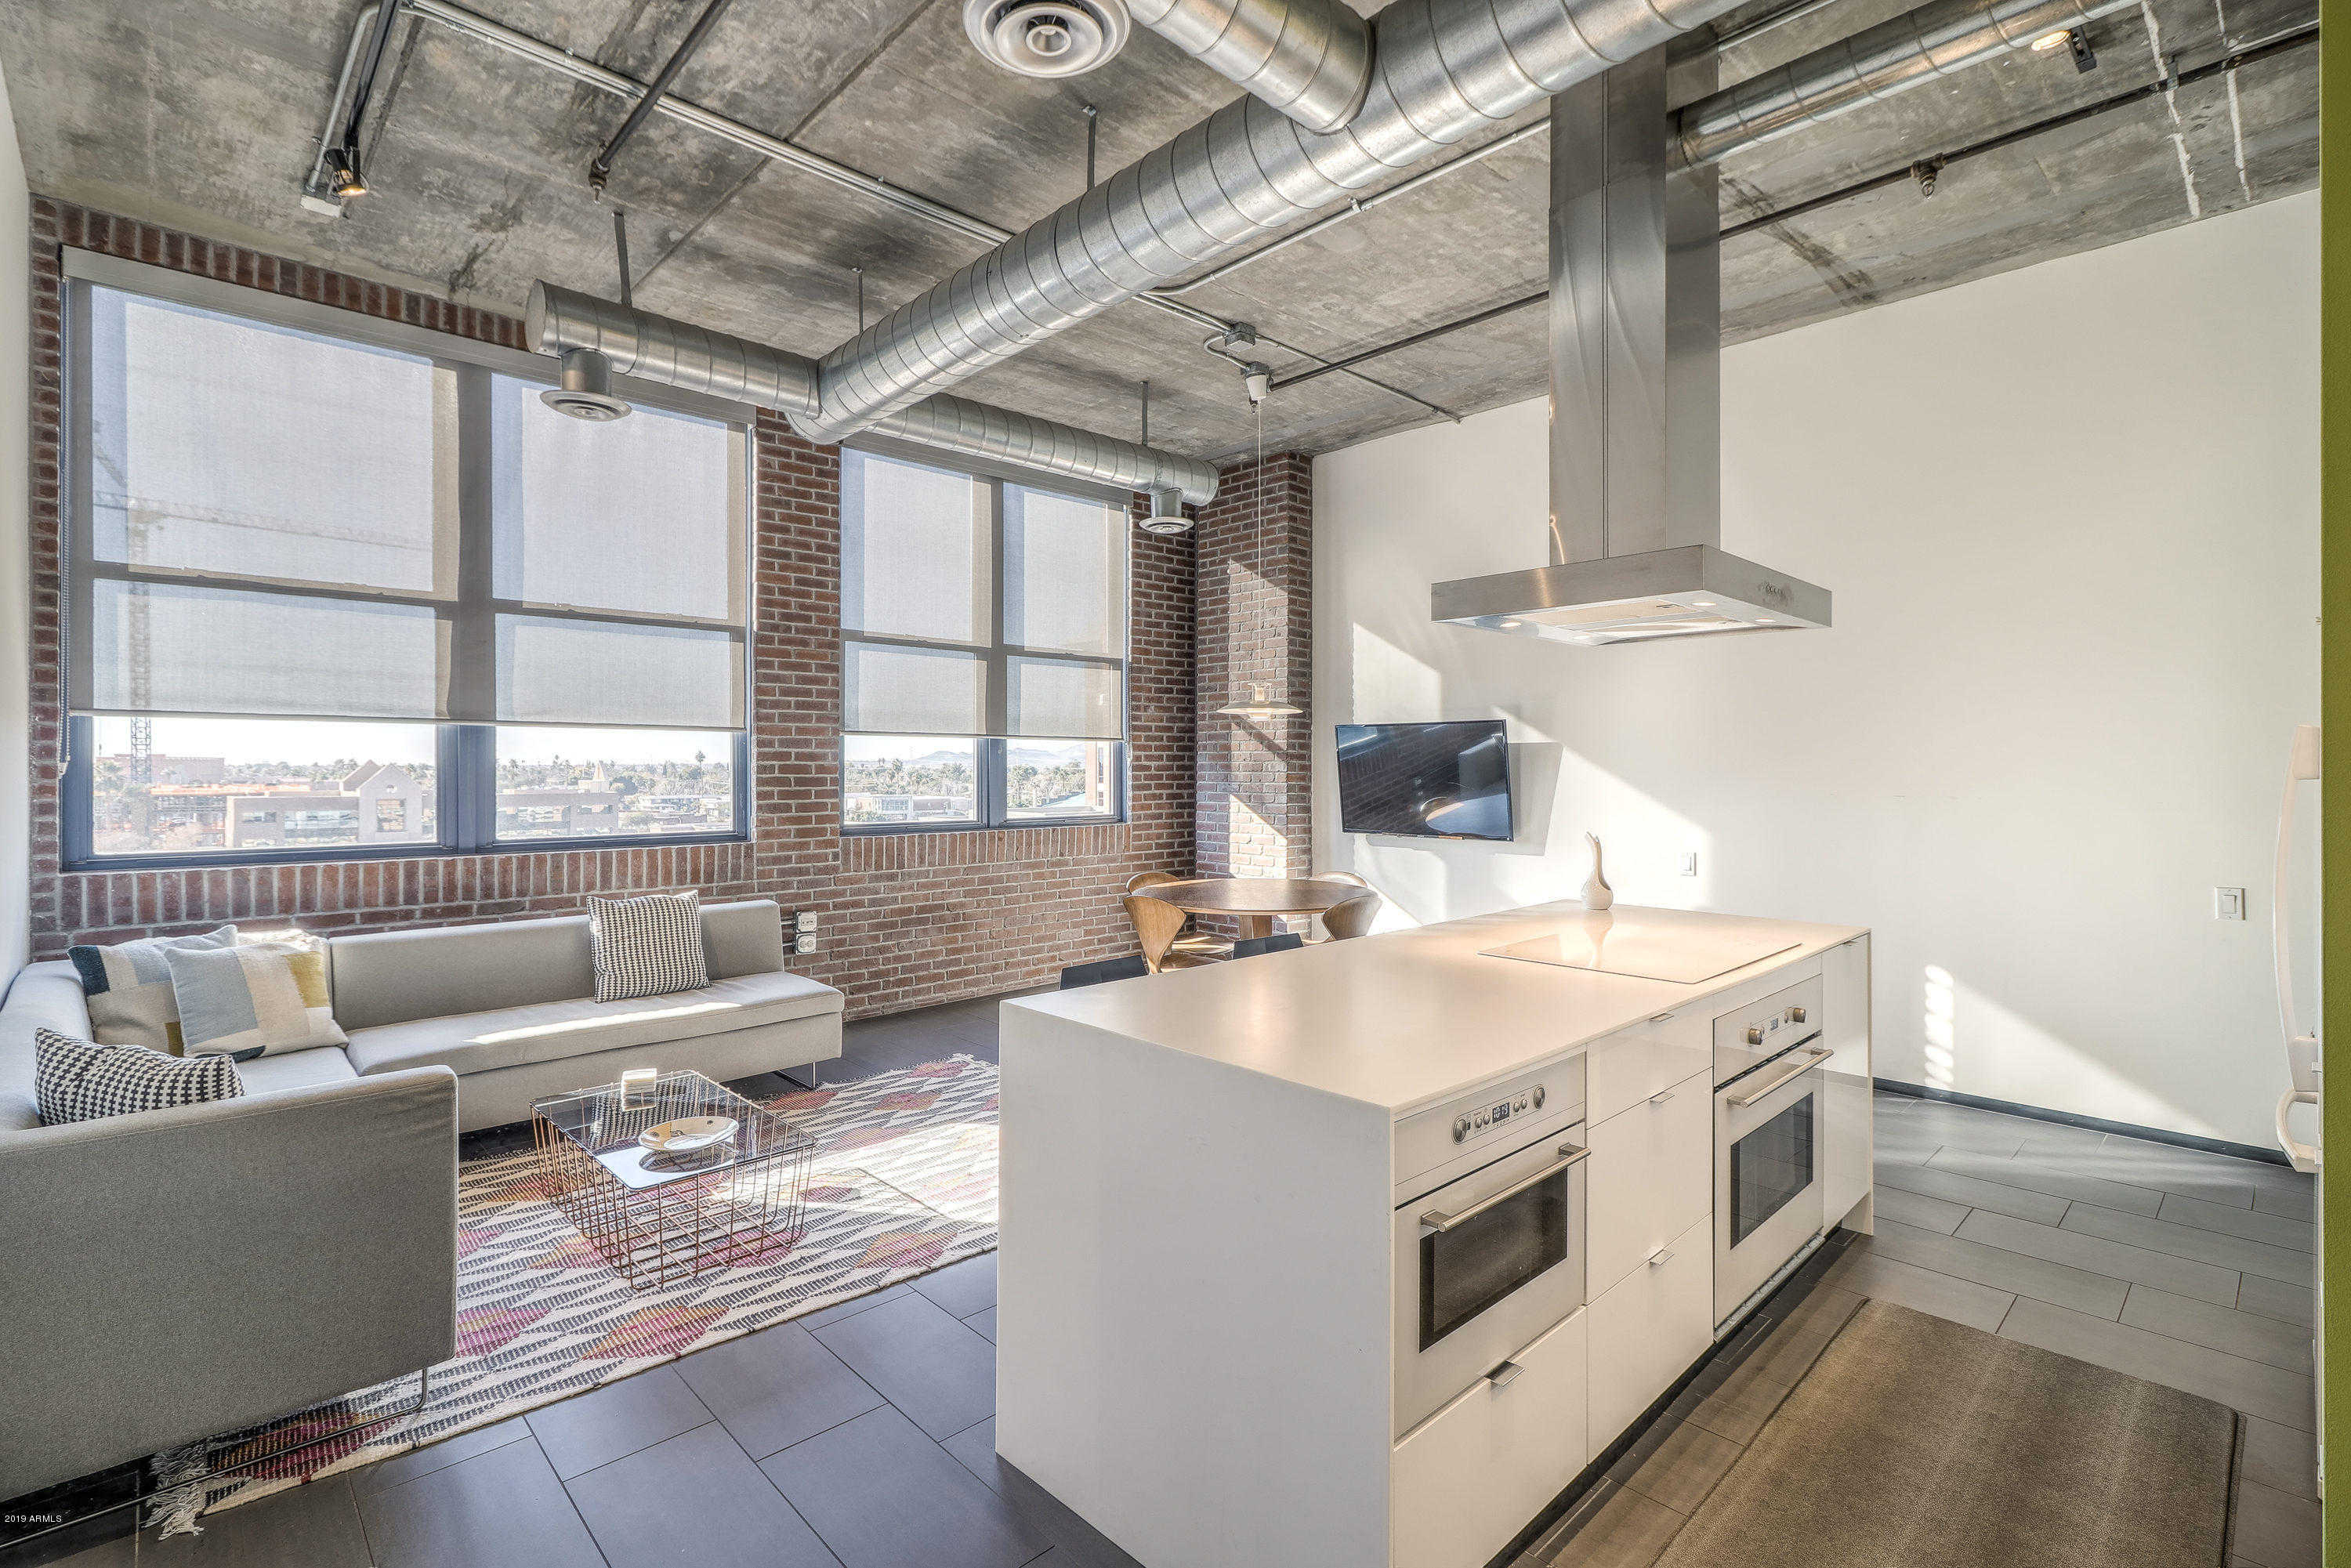 $325,000 - 1Br/1Ba -  for Sale in Lofts At Orchidhouse Condominium, Tempe